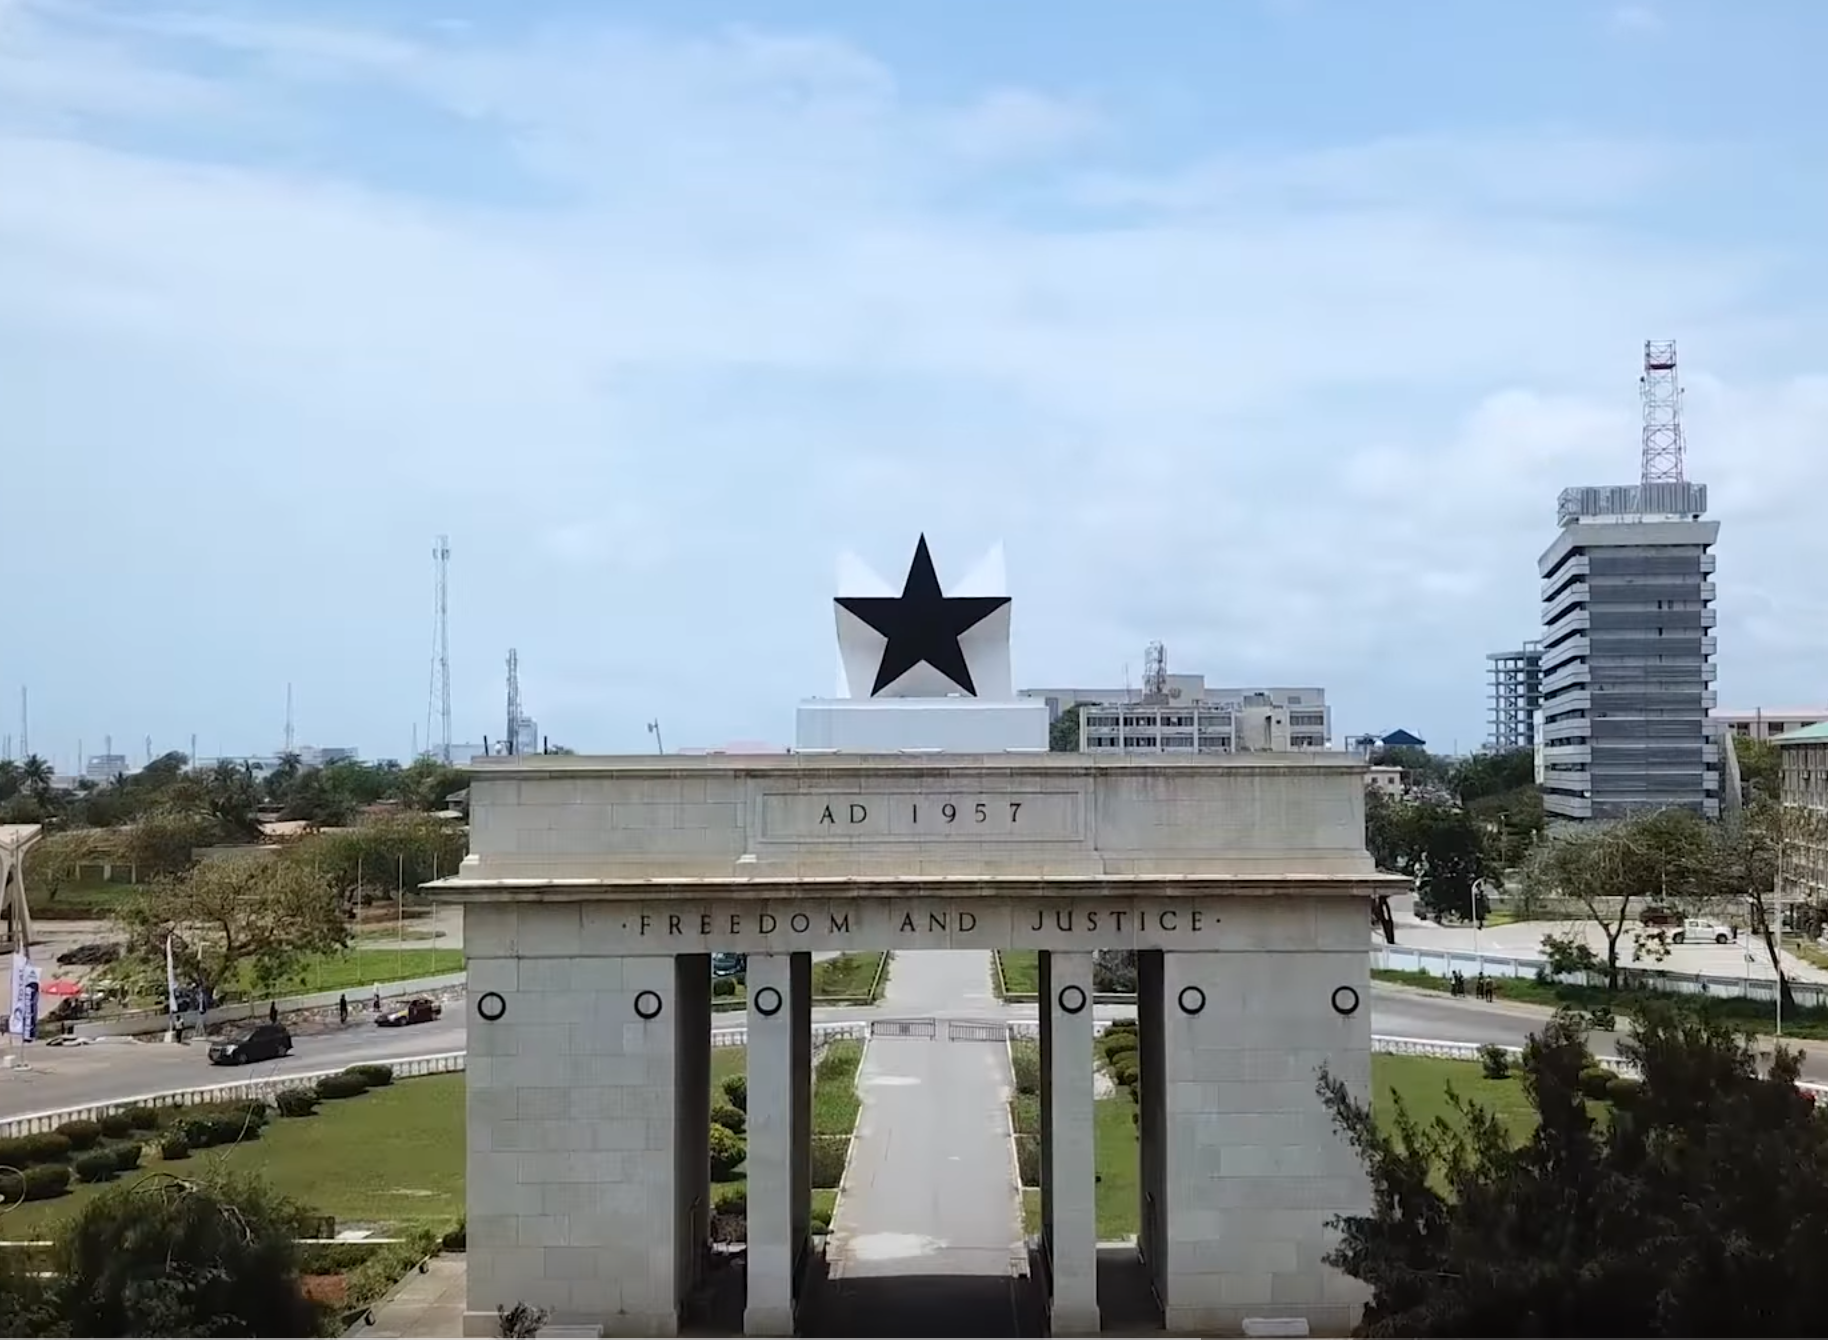 Monument in Accra